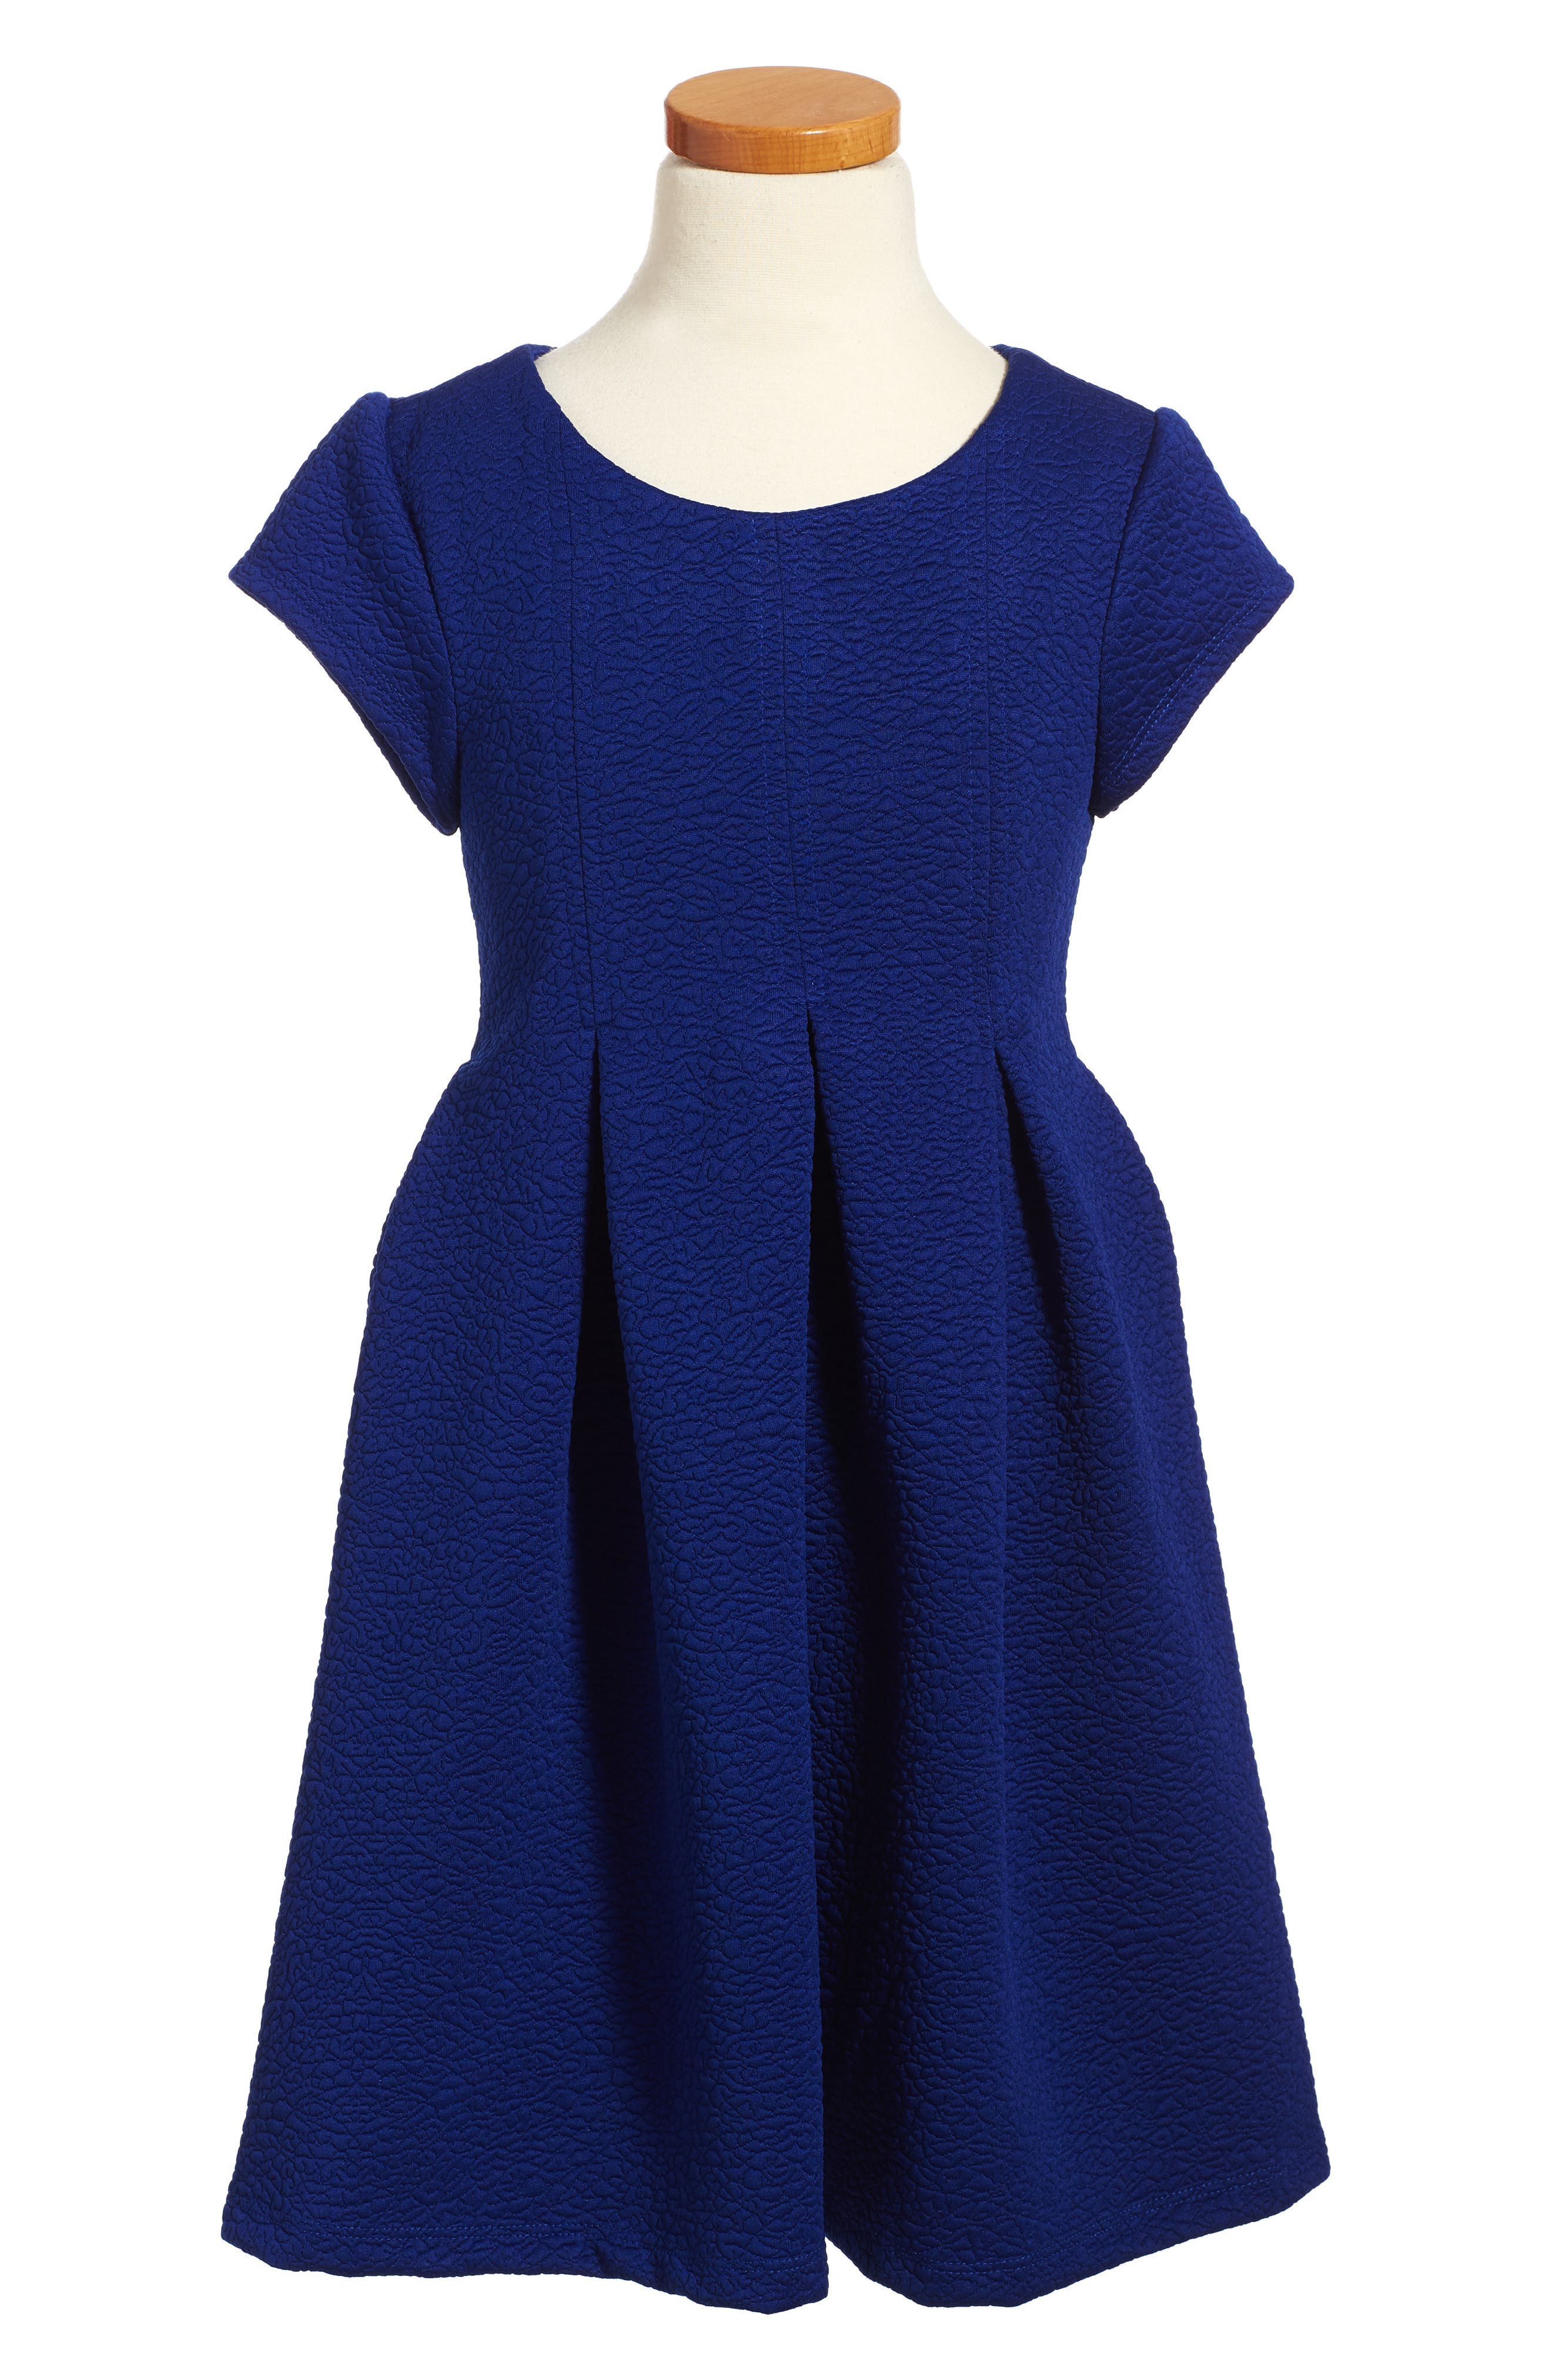 Pleated Knit Dress,                         Main,                         color, Royal